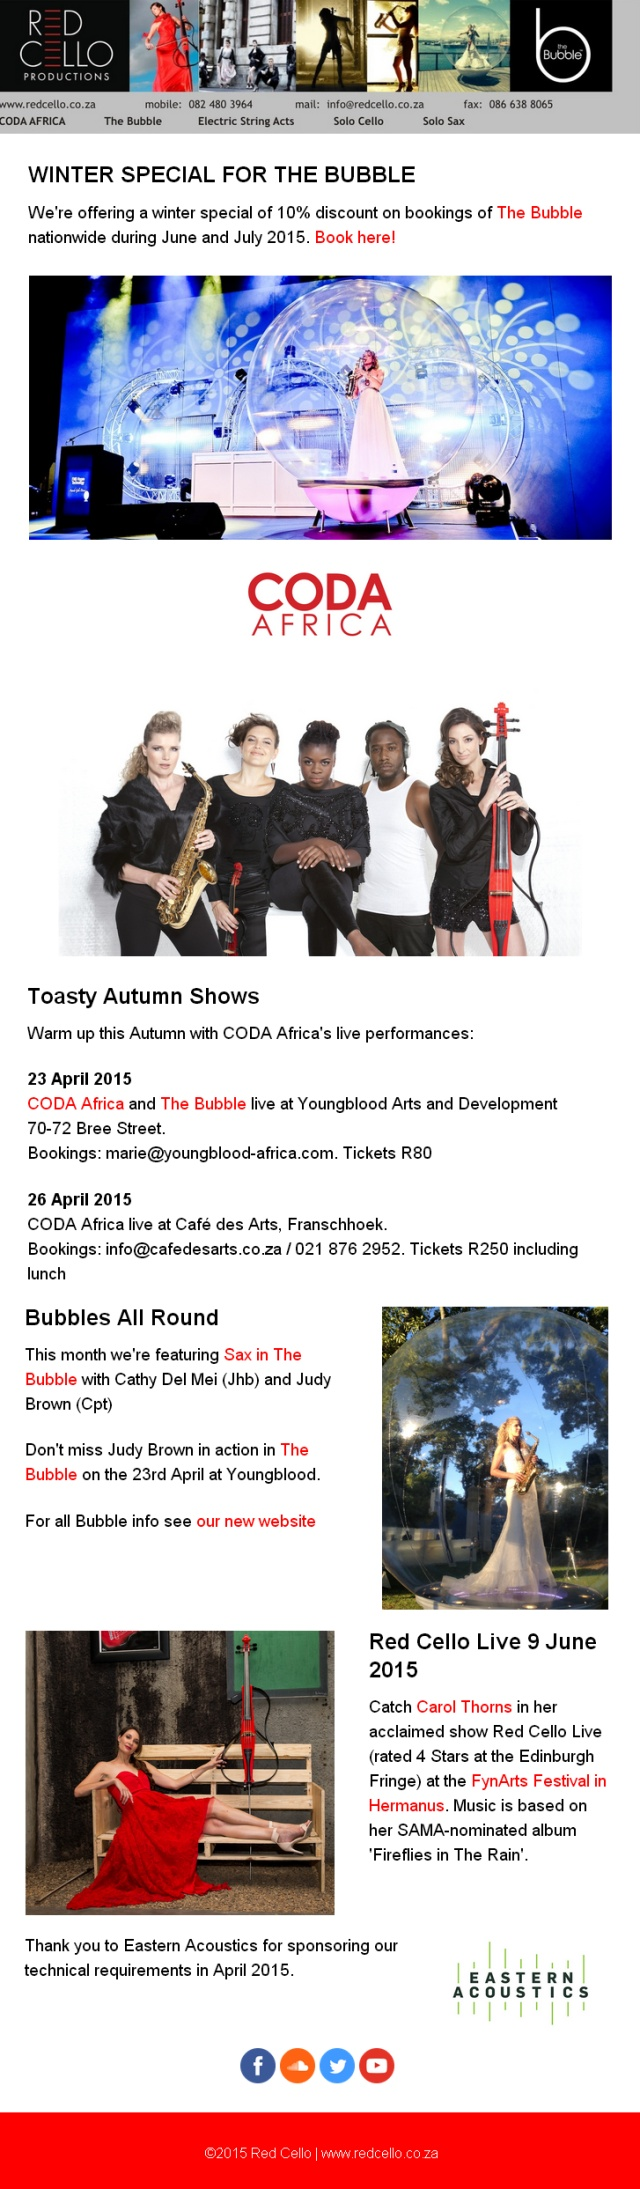 Autumn Red Cello Shows and Specials